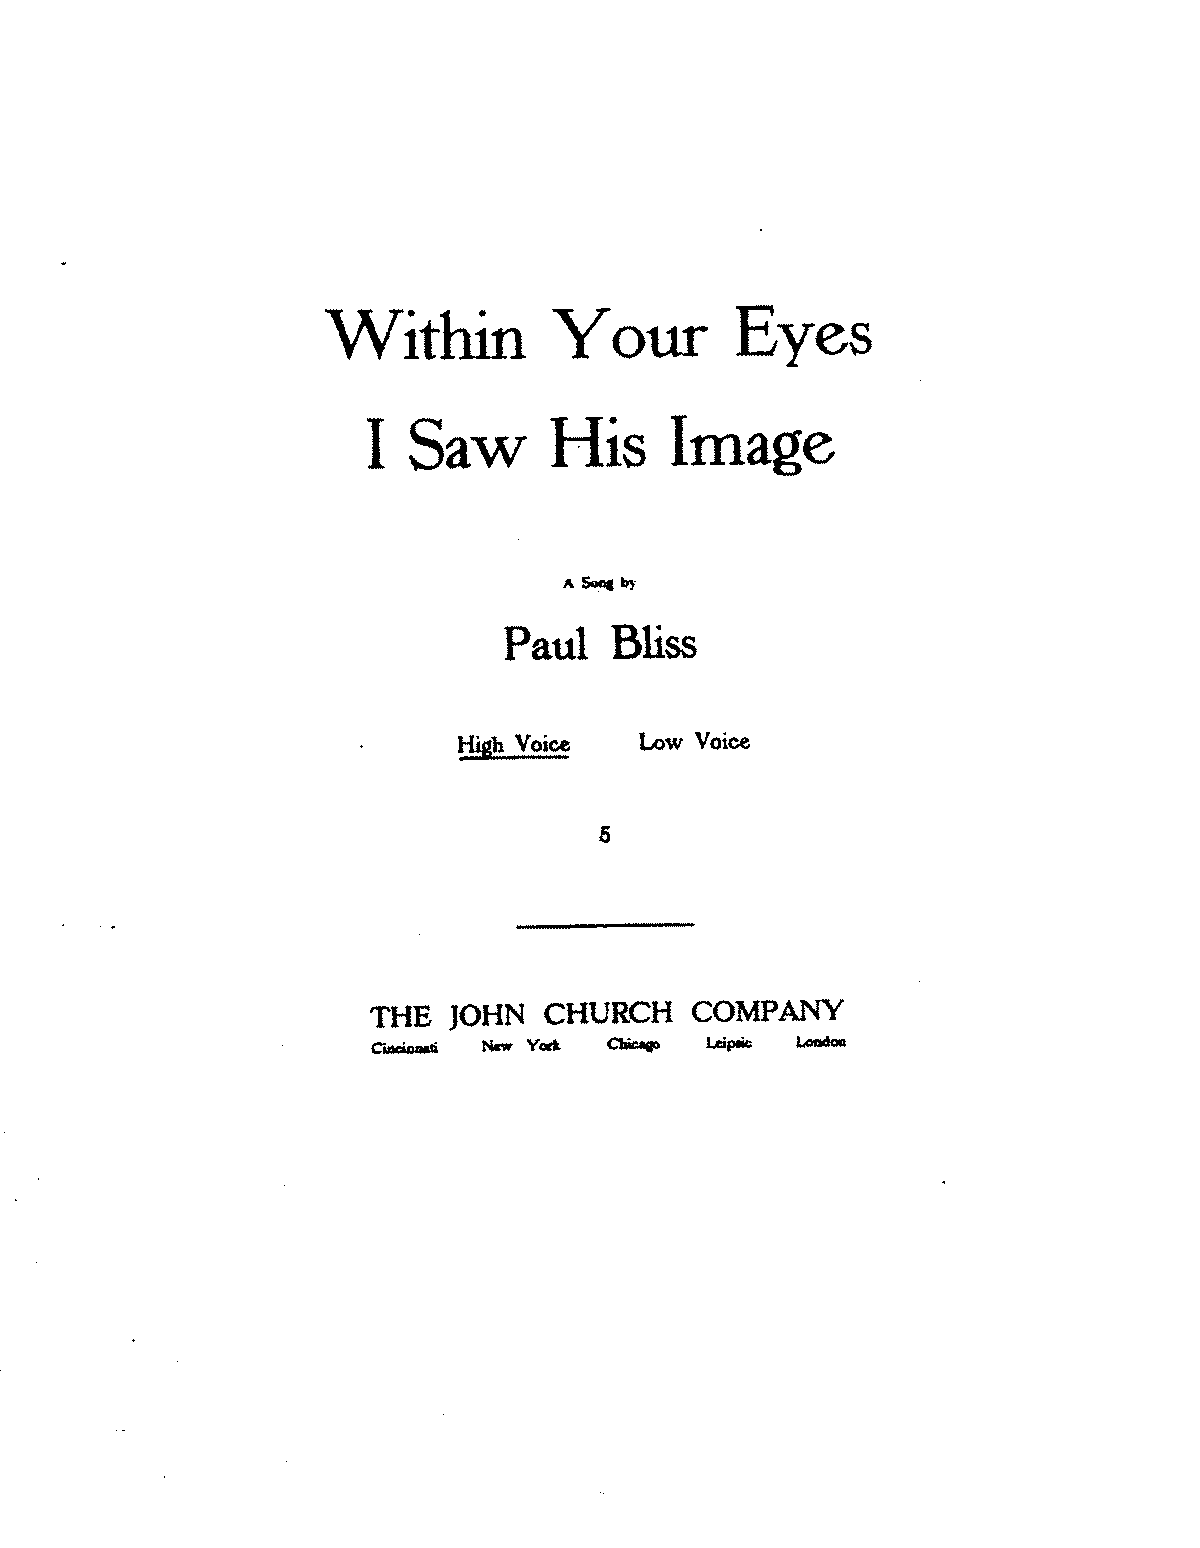 PMLP229150-Bliss Within your eyes cropped.pdf